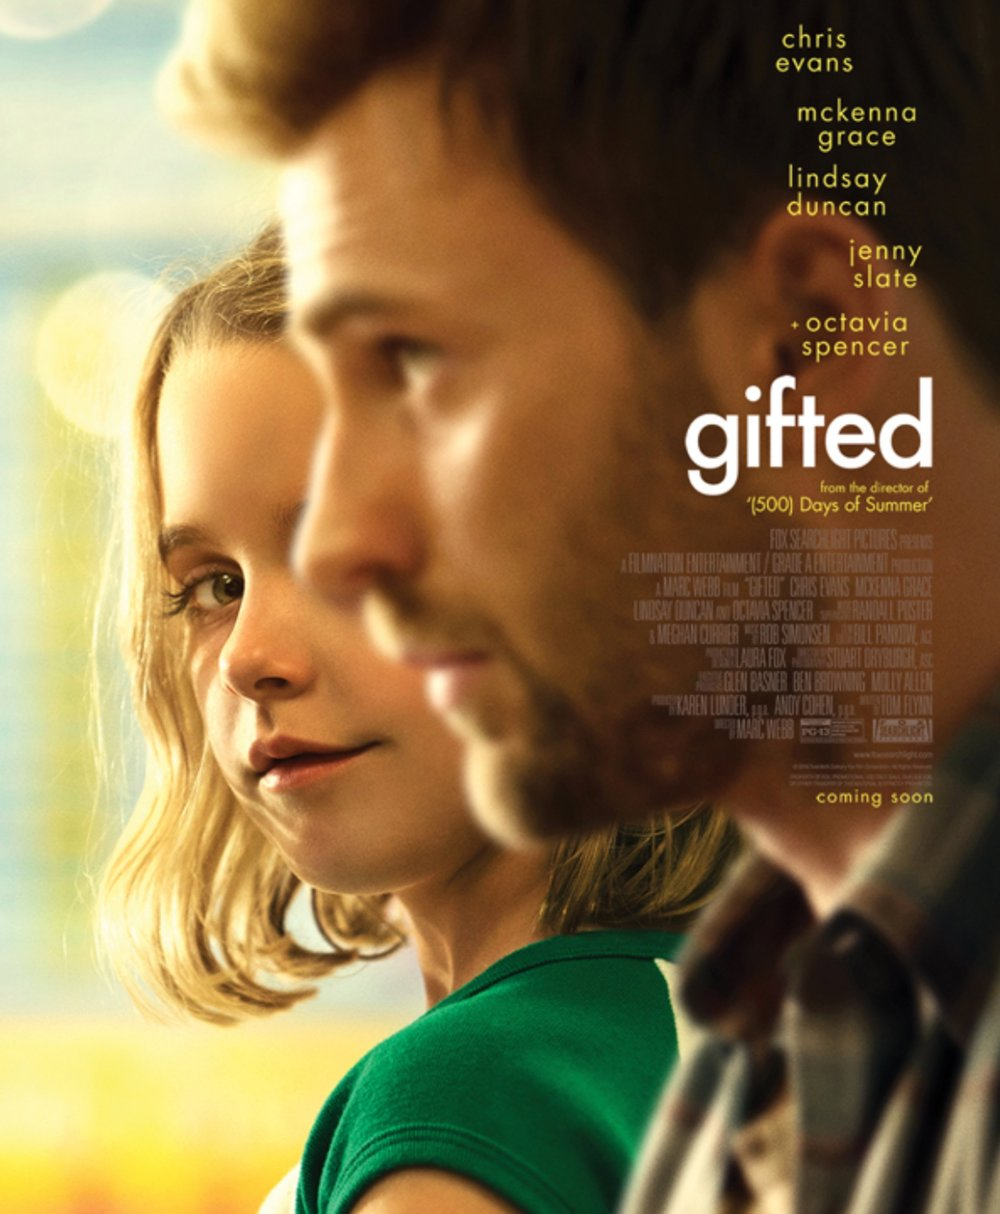 gifted-poster.jpg